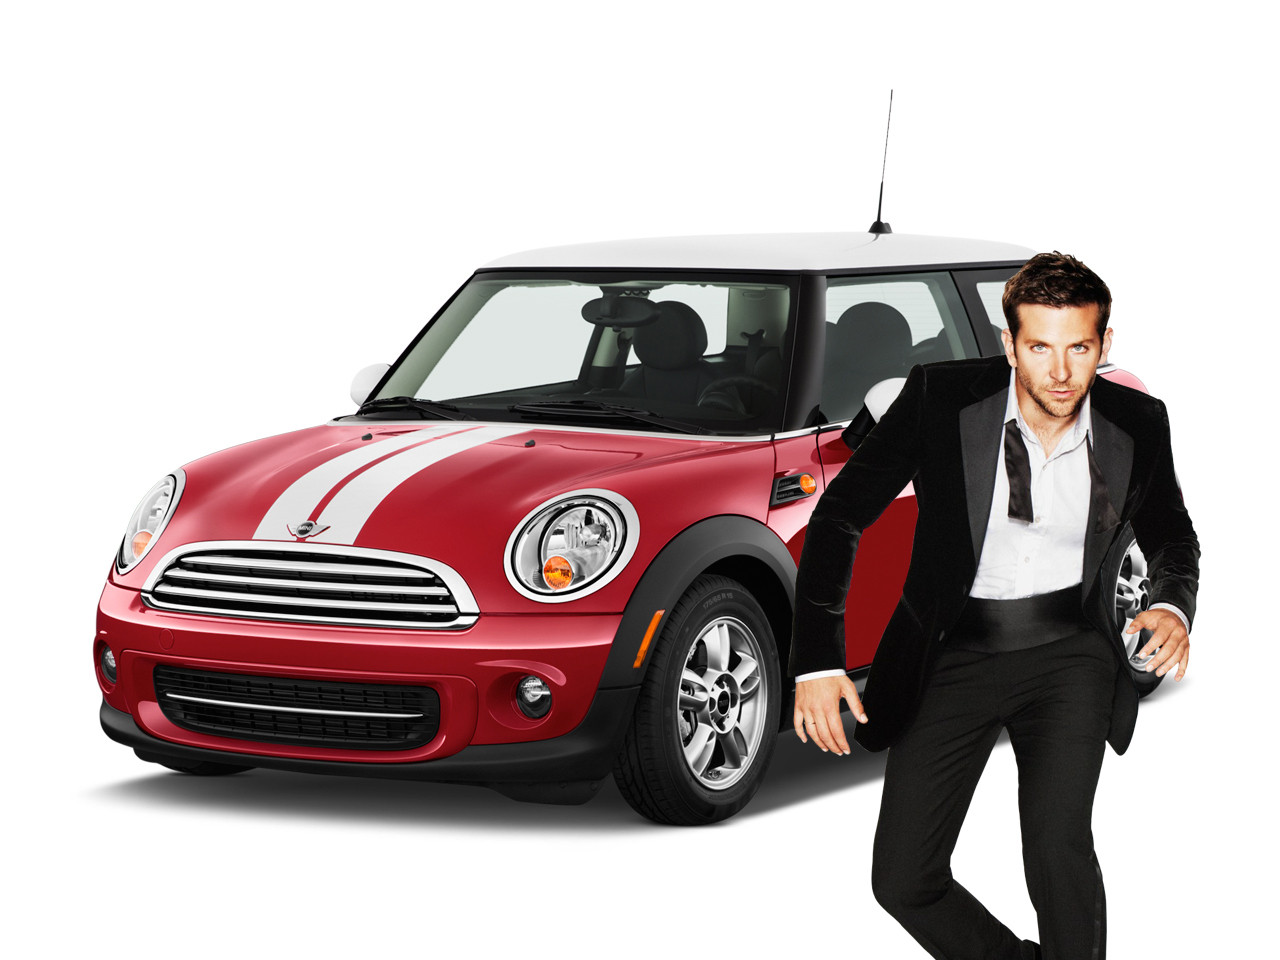 Find The Perfect Car: Pun Fun: Finding The Perfect Car/Celebrity Match